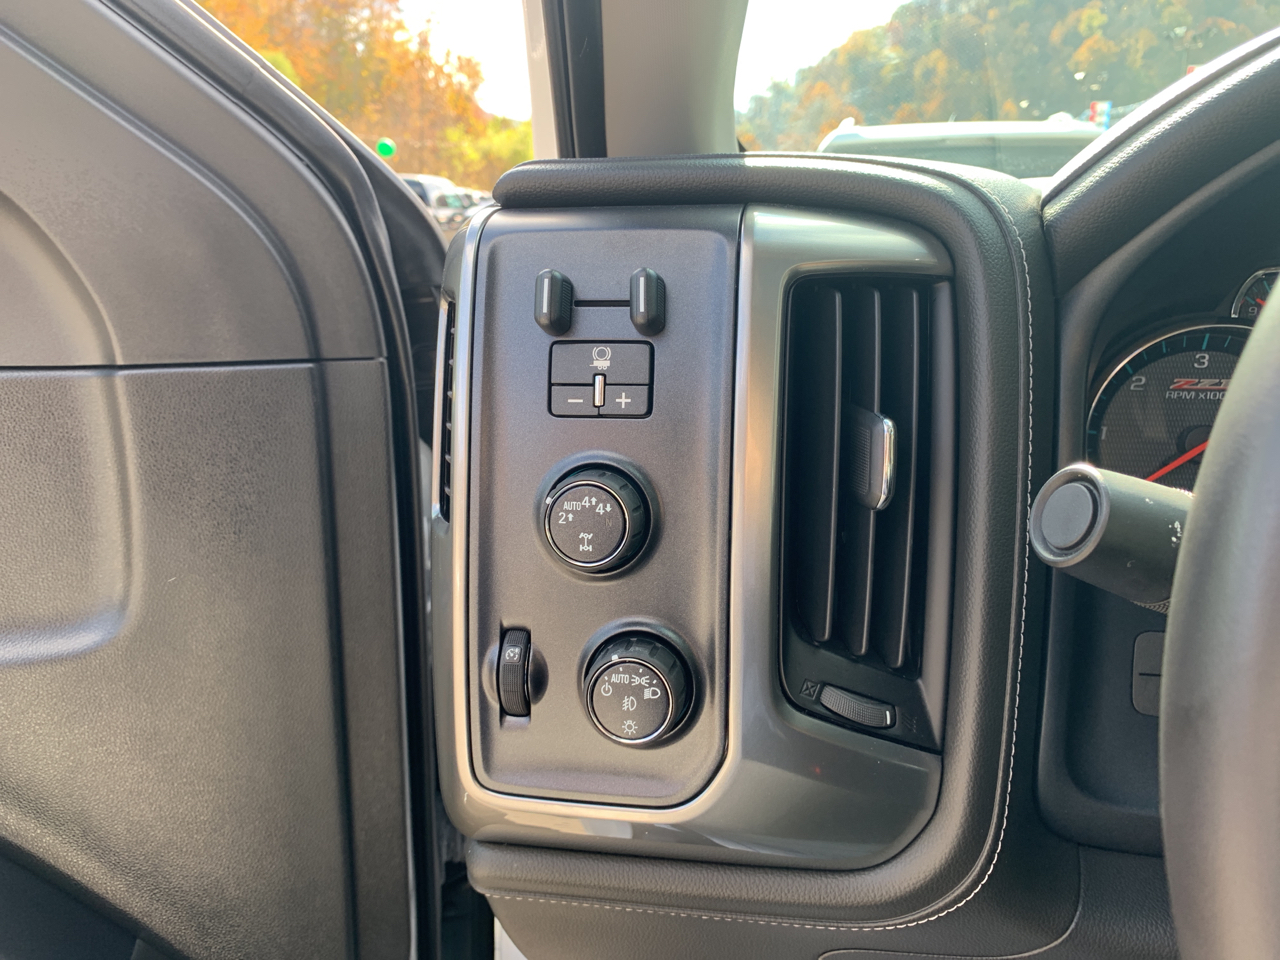 Auto Brokers Of Paintsville >> Used 2018 Chevrolet Silverado 1500 LTZ Z71 for Sale in paintsville KY 41653 Auto Brokers of ...